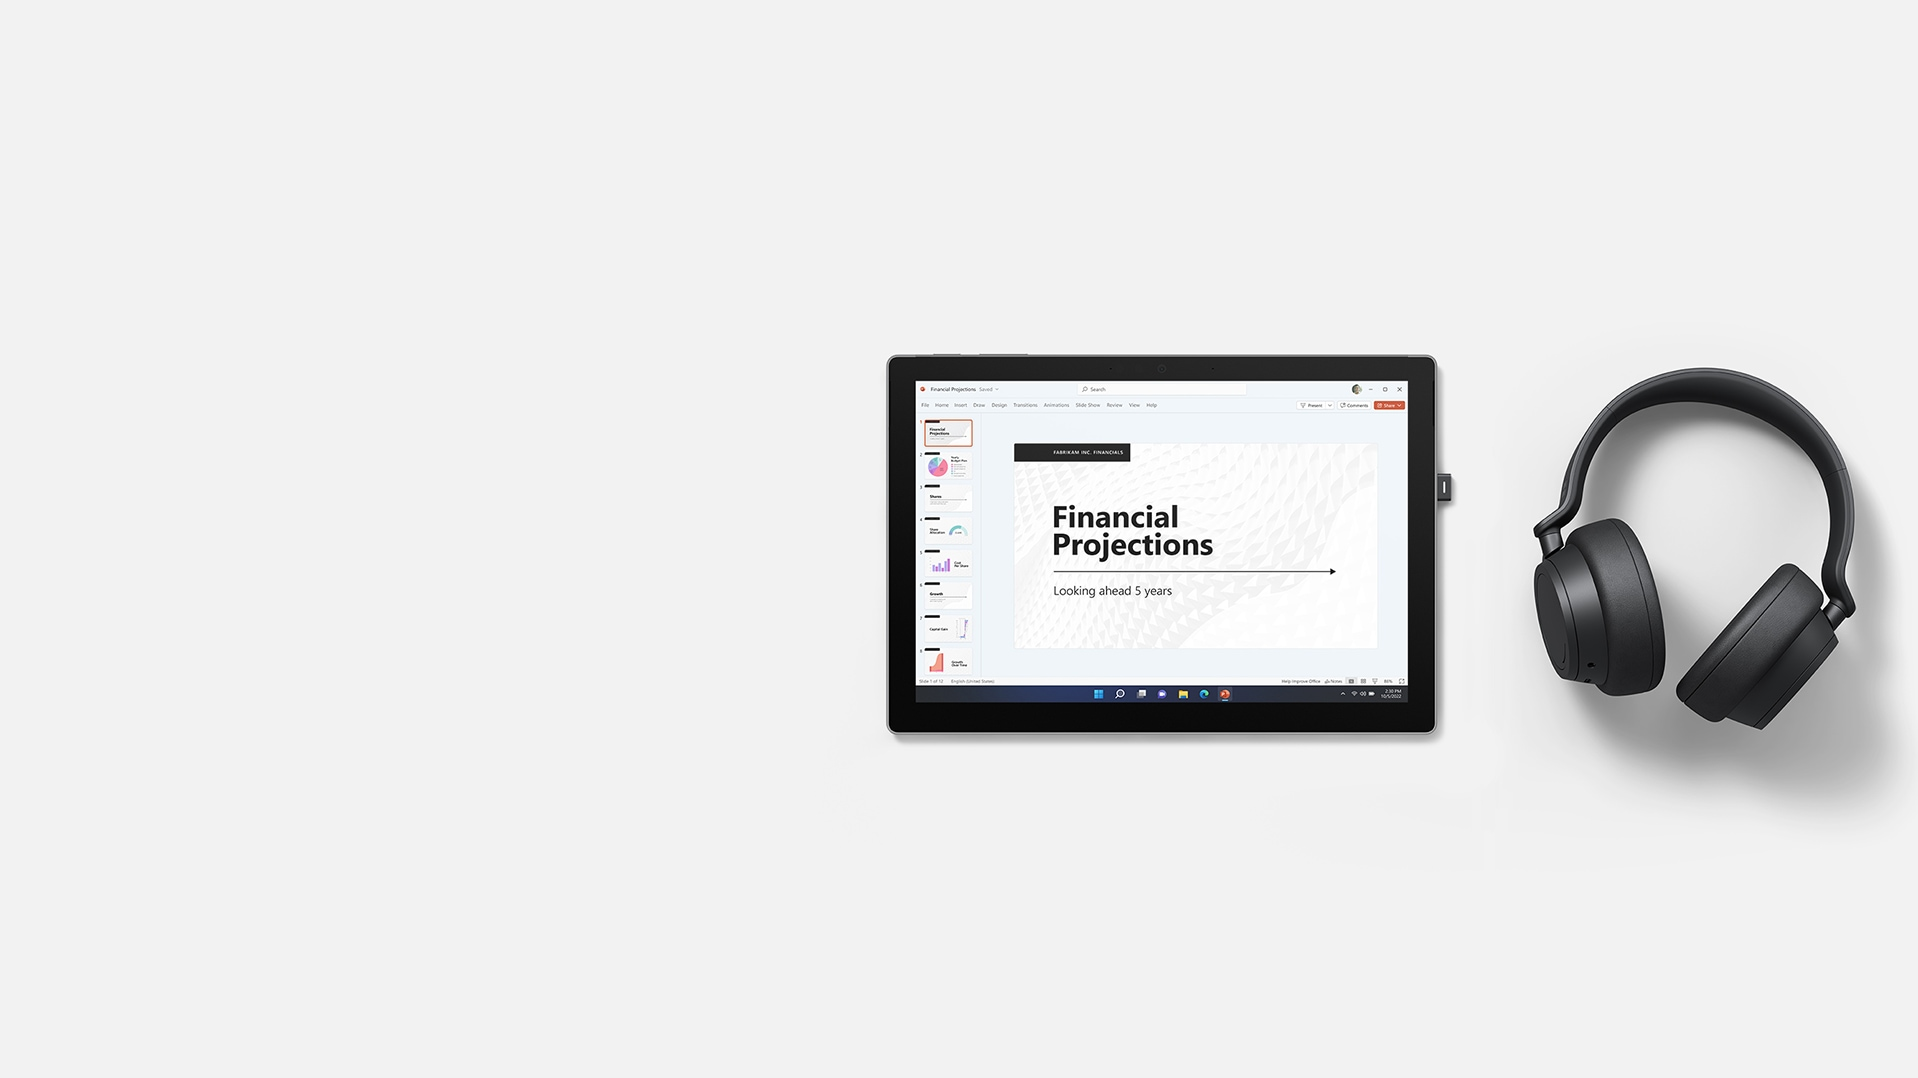 A Microsoft PowerPoint presentation on a Surface Pro 7+ with Surface Headphones 2+ placed on the right side